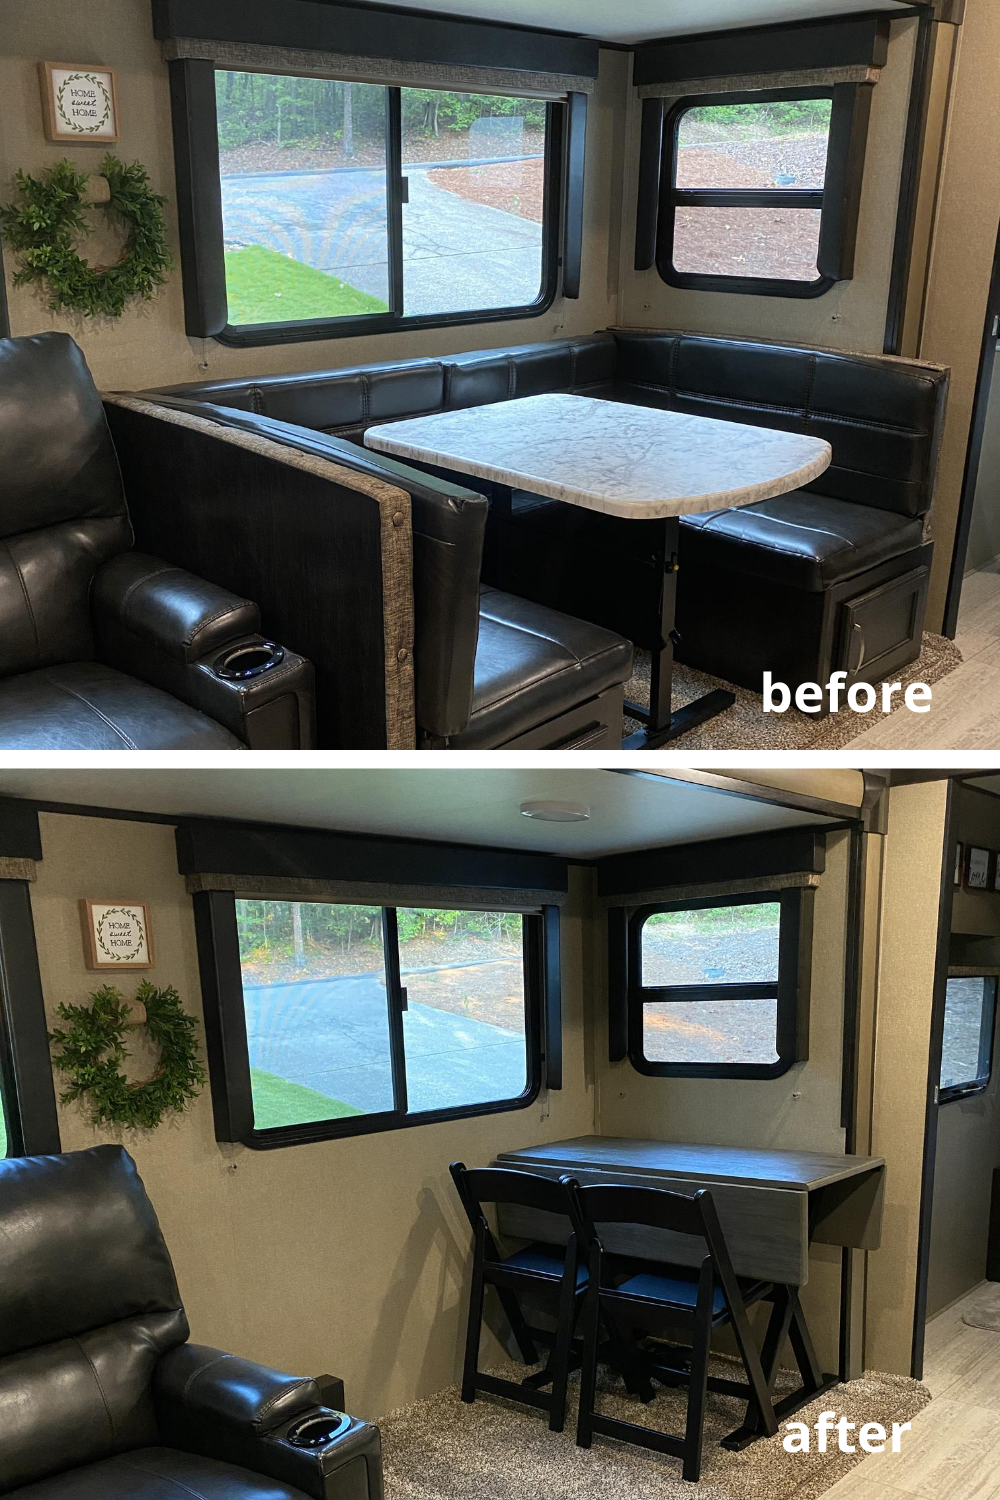 Removing our RV Dinette and Replacing with a Table and Chairs